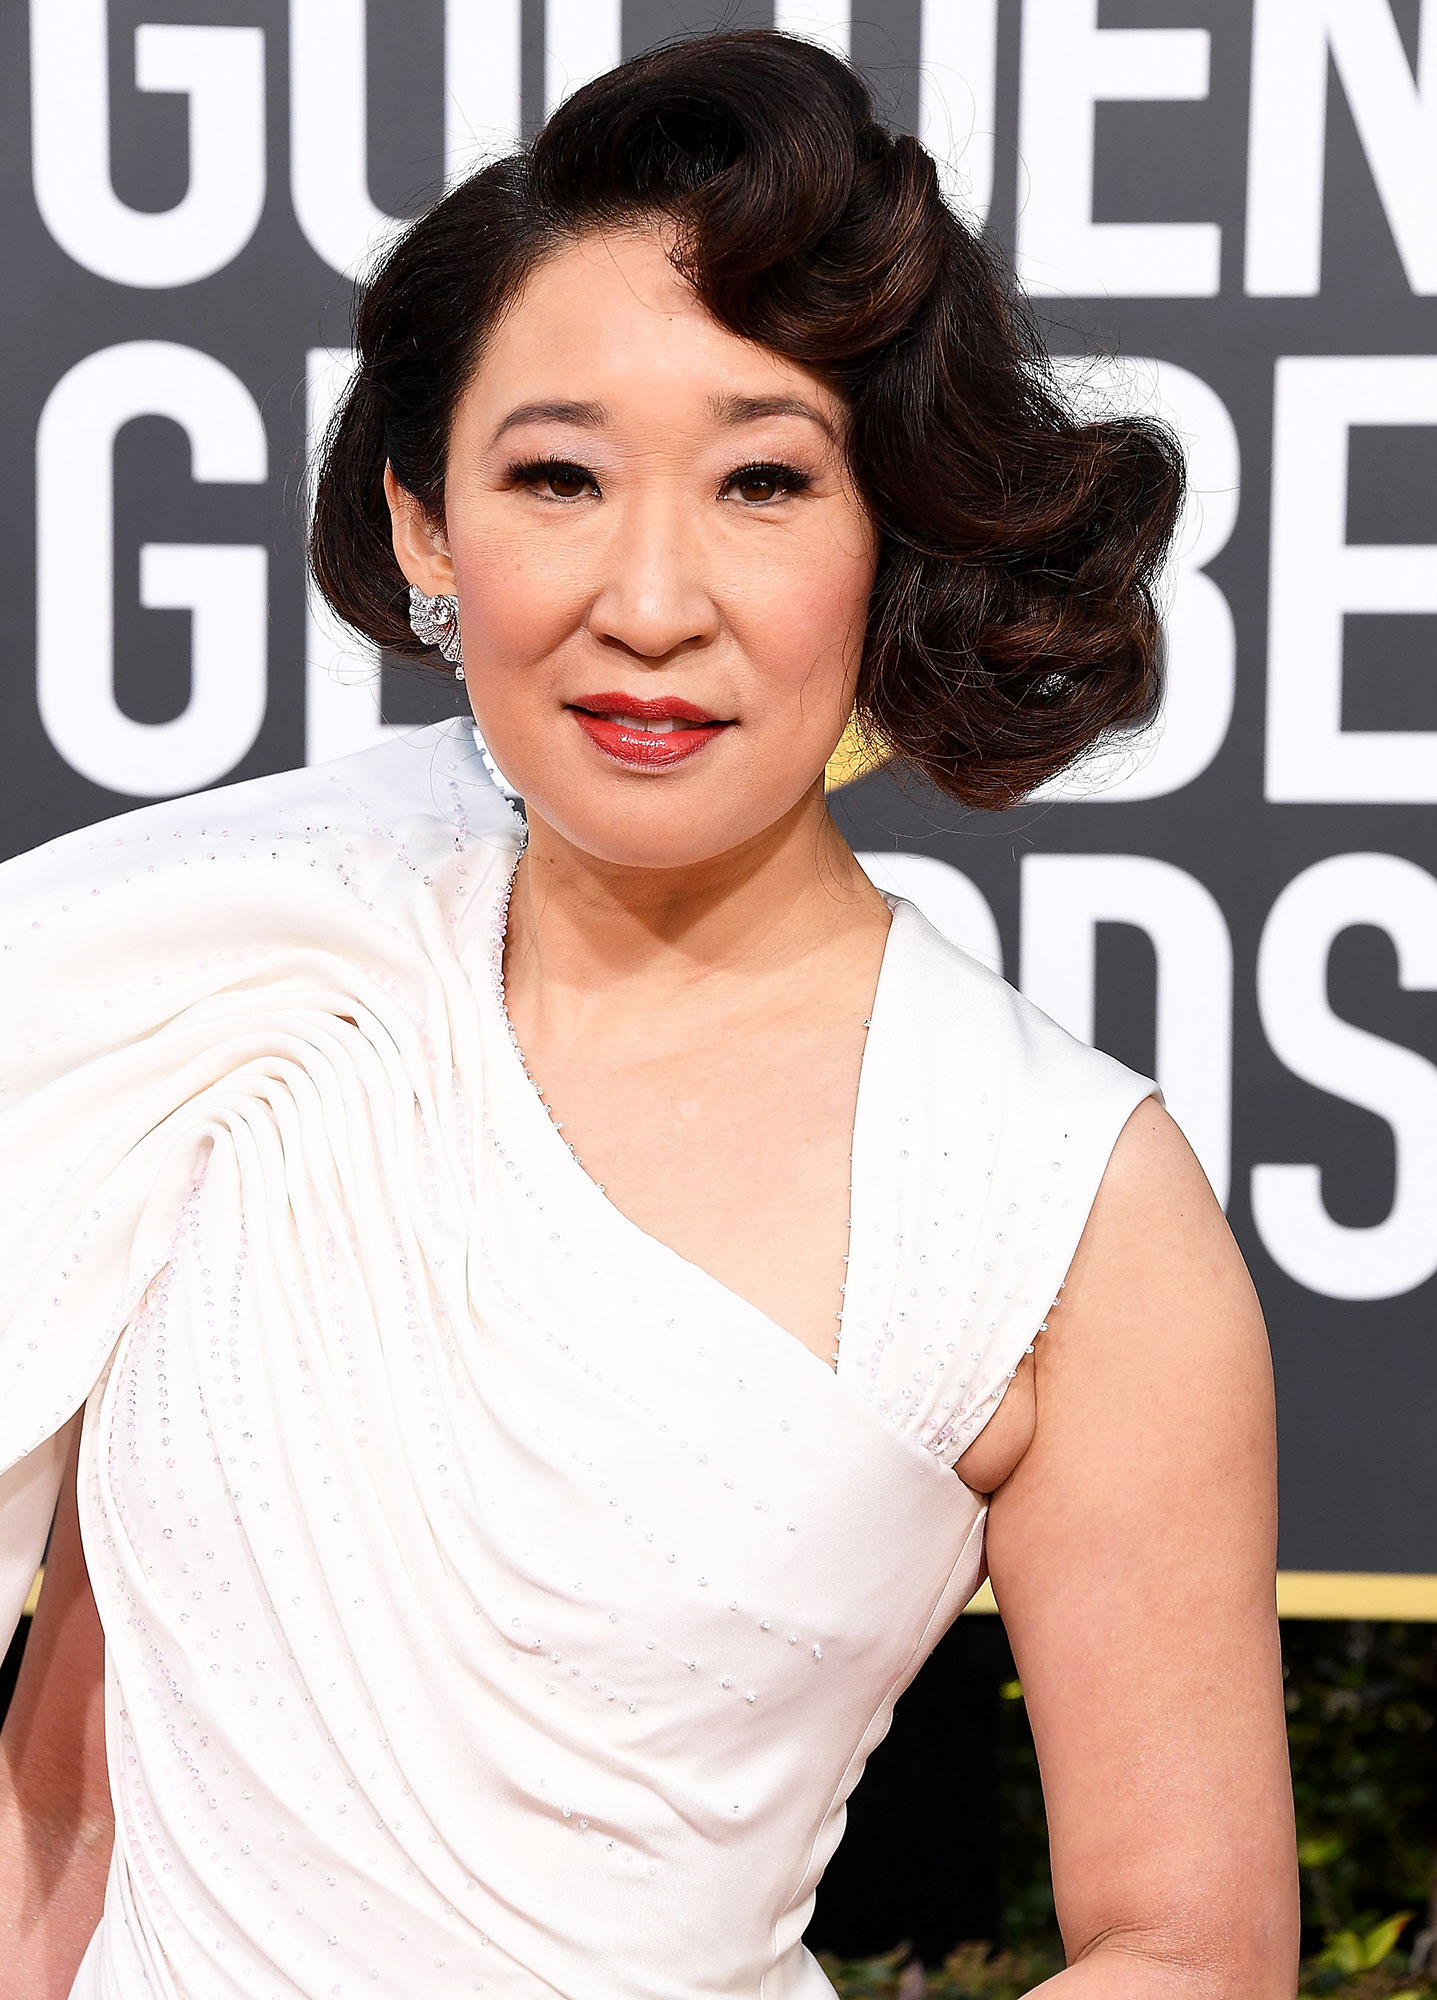 Sandra Oh - The Killing Eve star wore a rosy red lipstick to host the 2019 Golden Globes. She along with this gorgeous hue were on fire all night long.